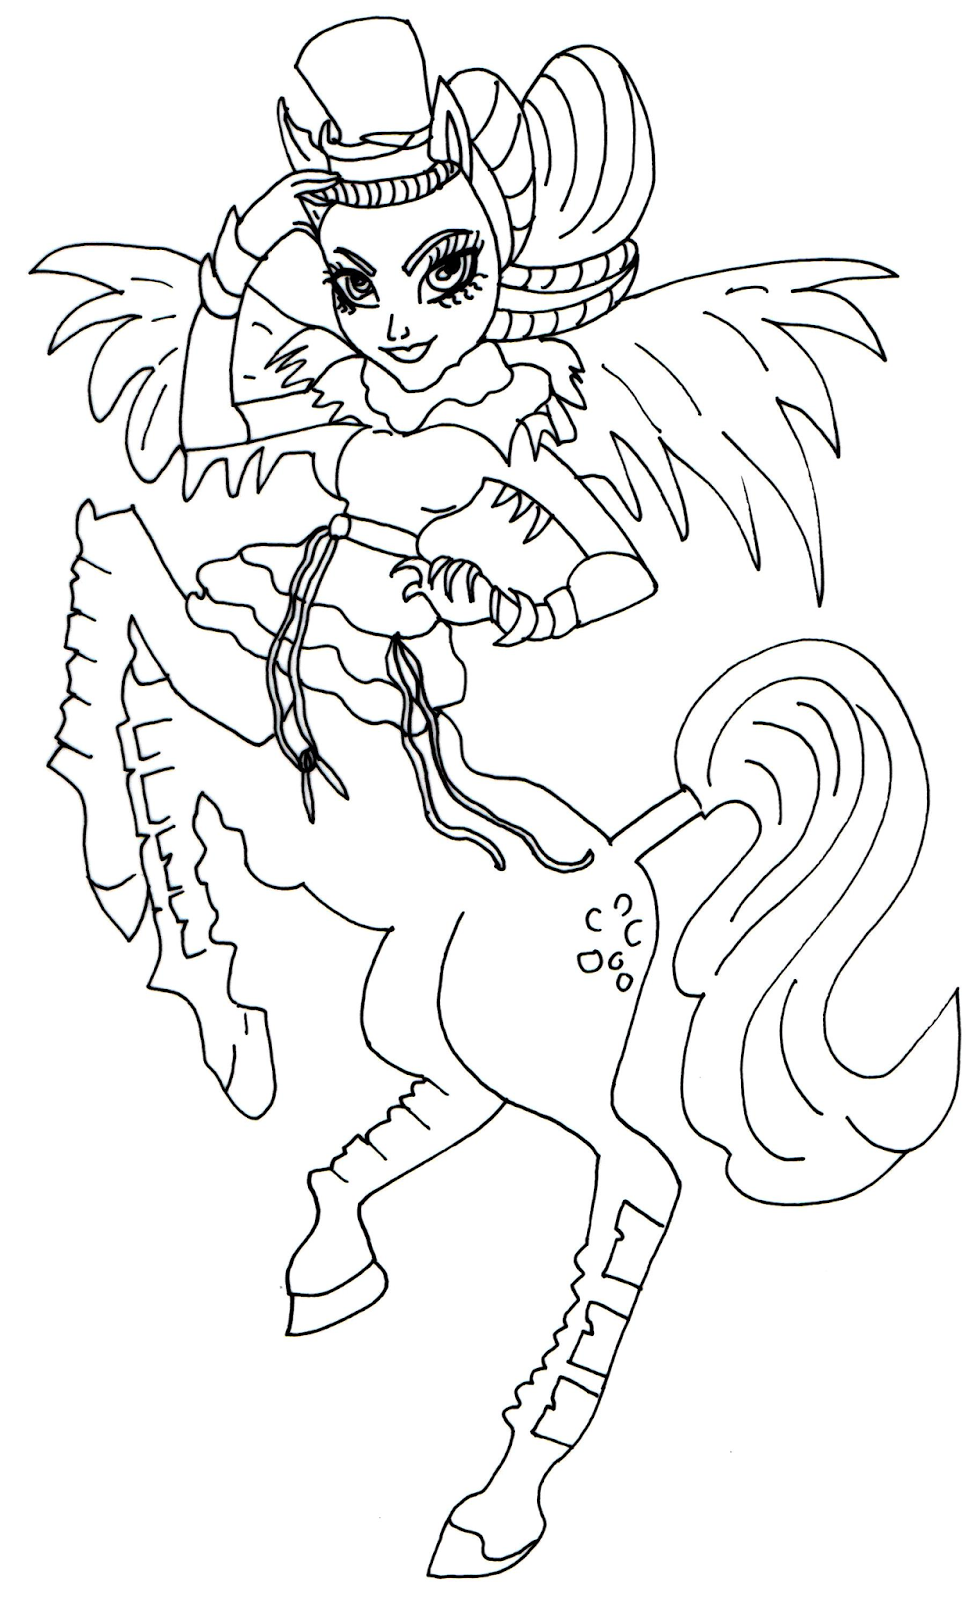 avea trotter coloring pages - photo#3